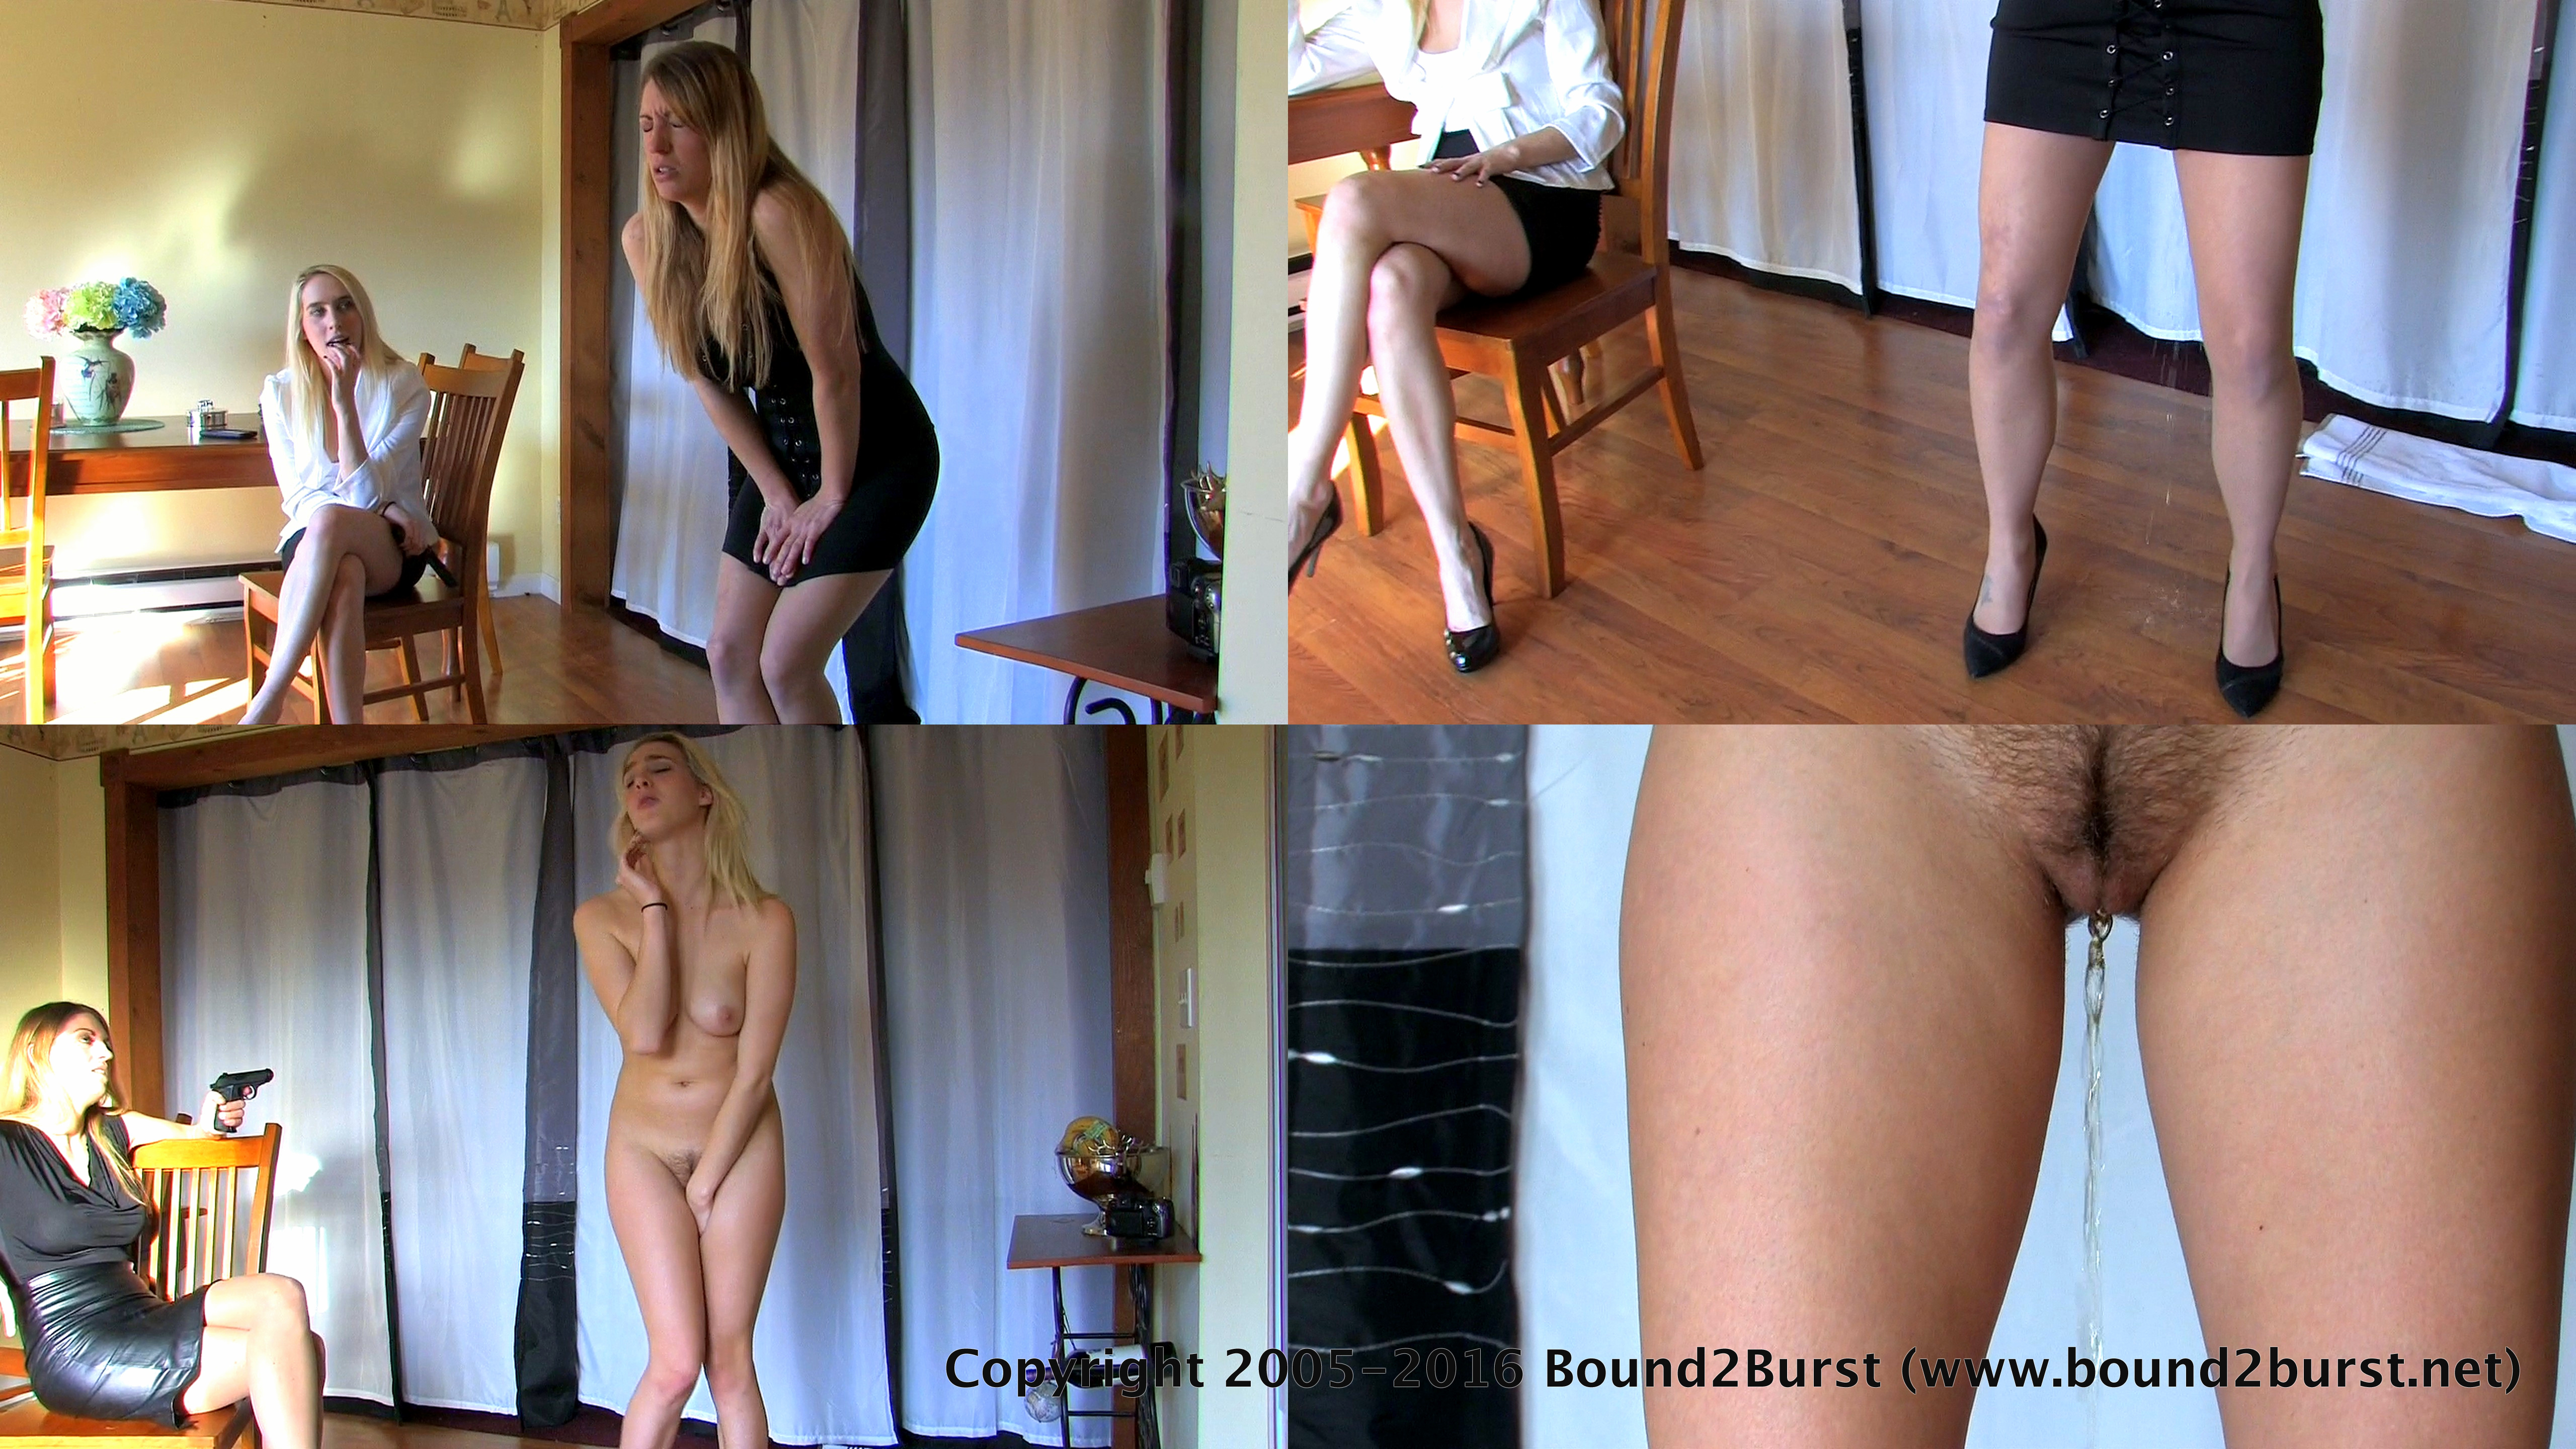 Secret amateur videod